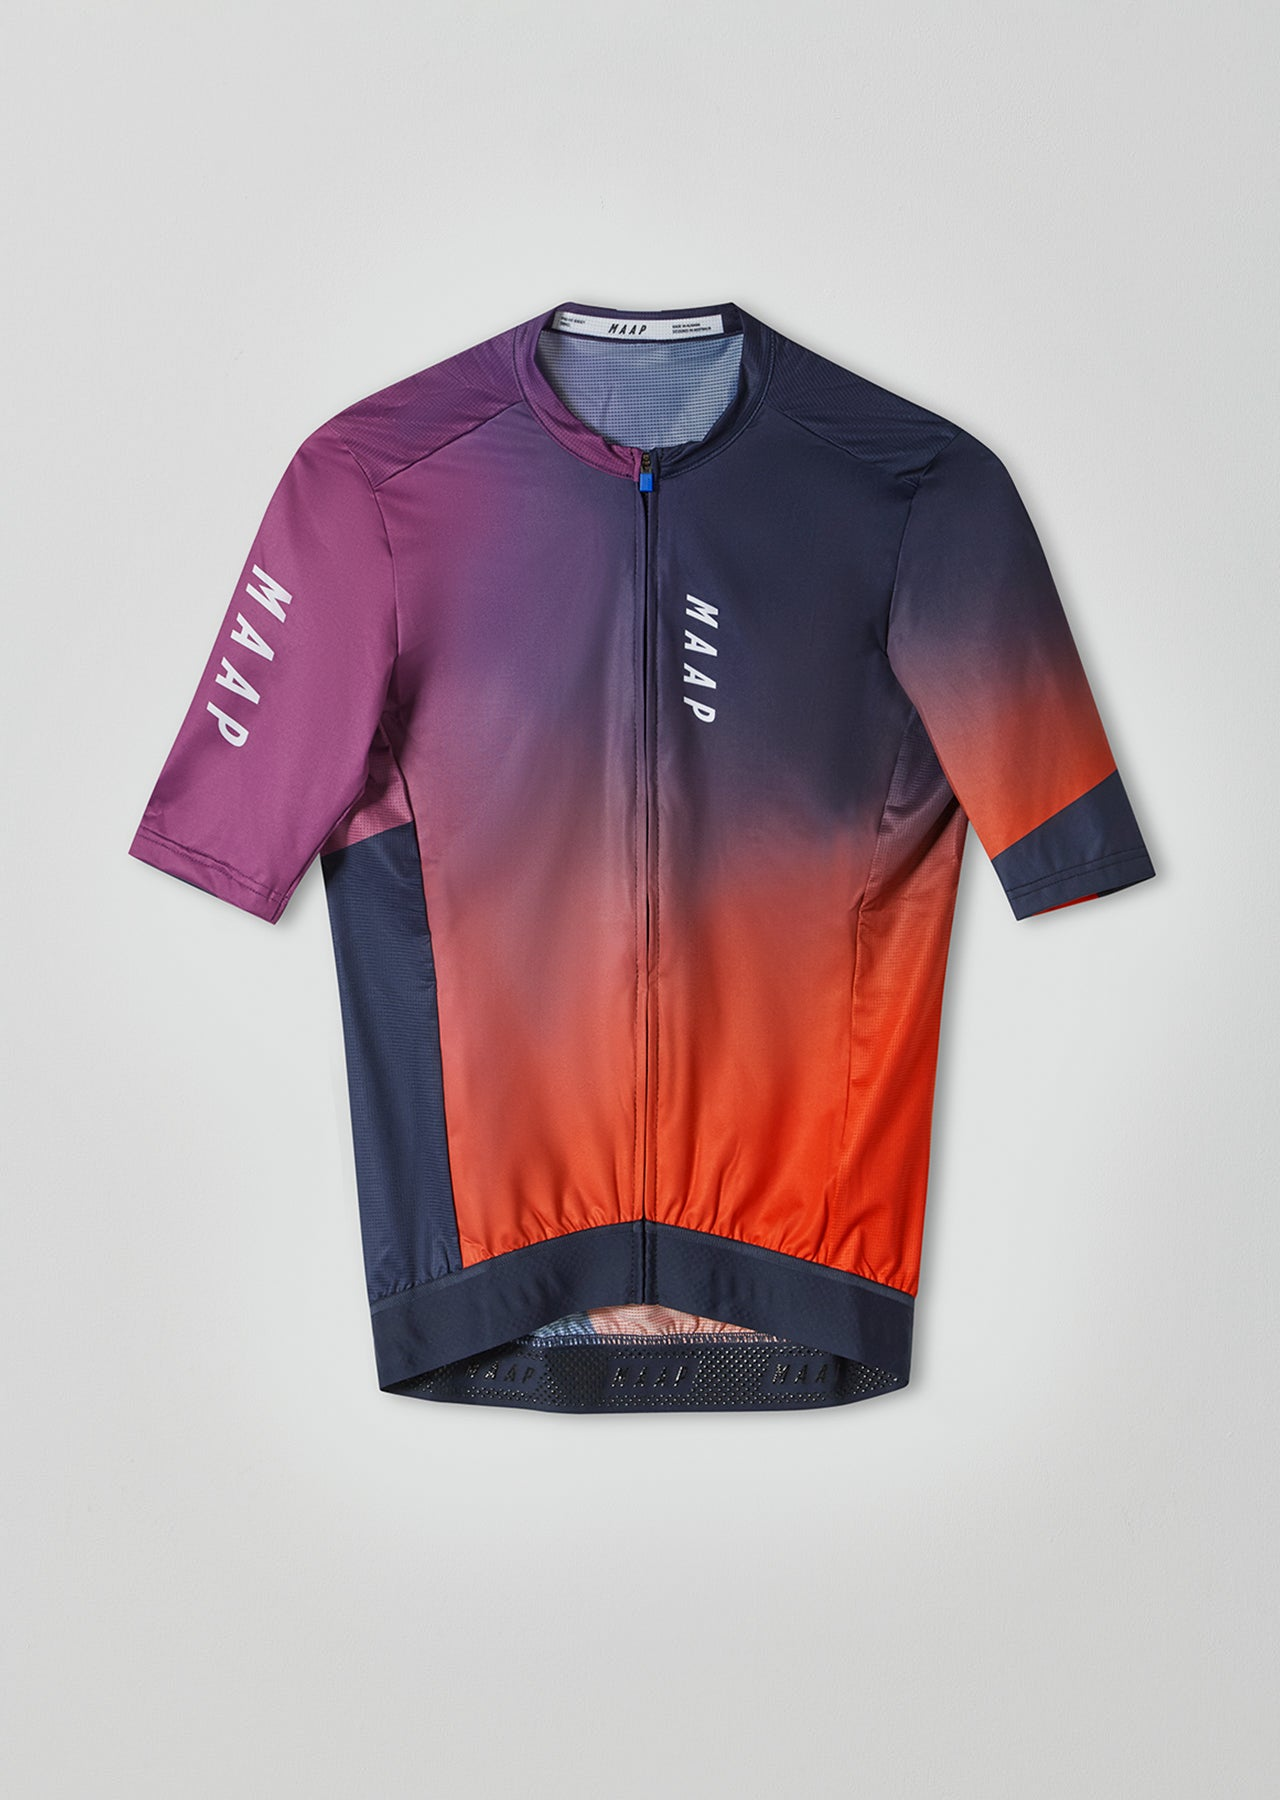 Flare Pro Fit Jersey